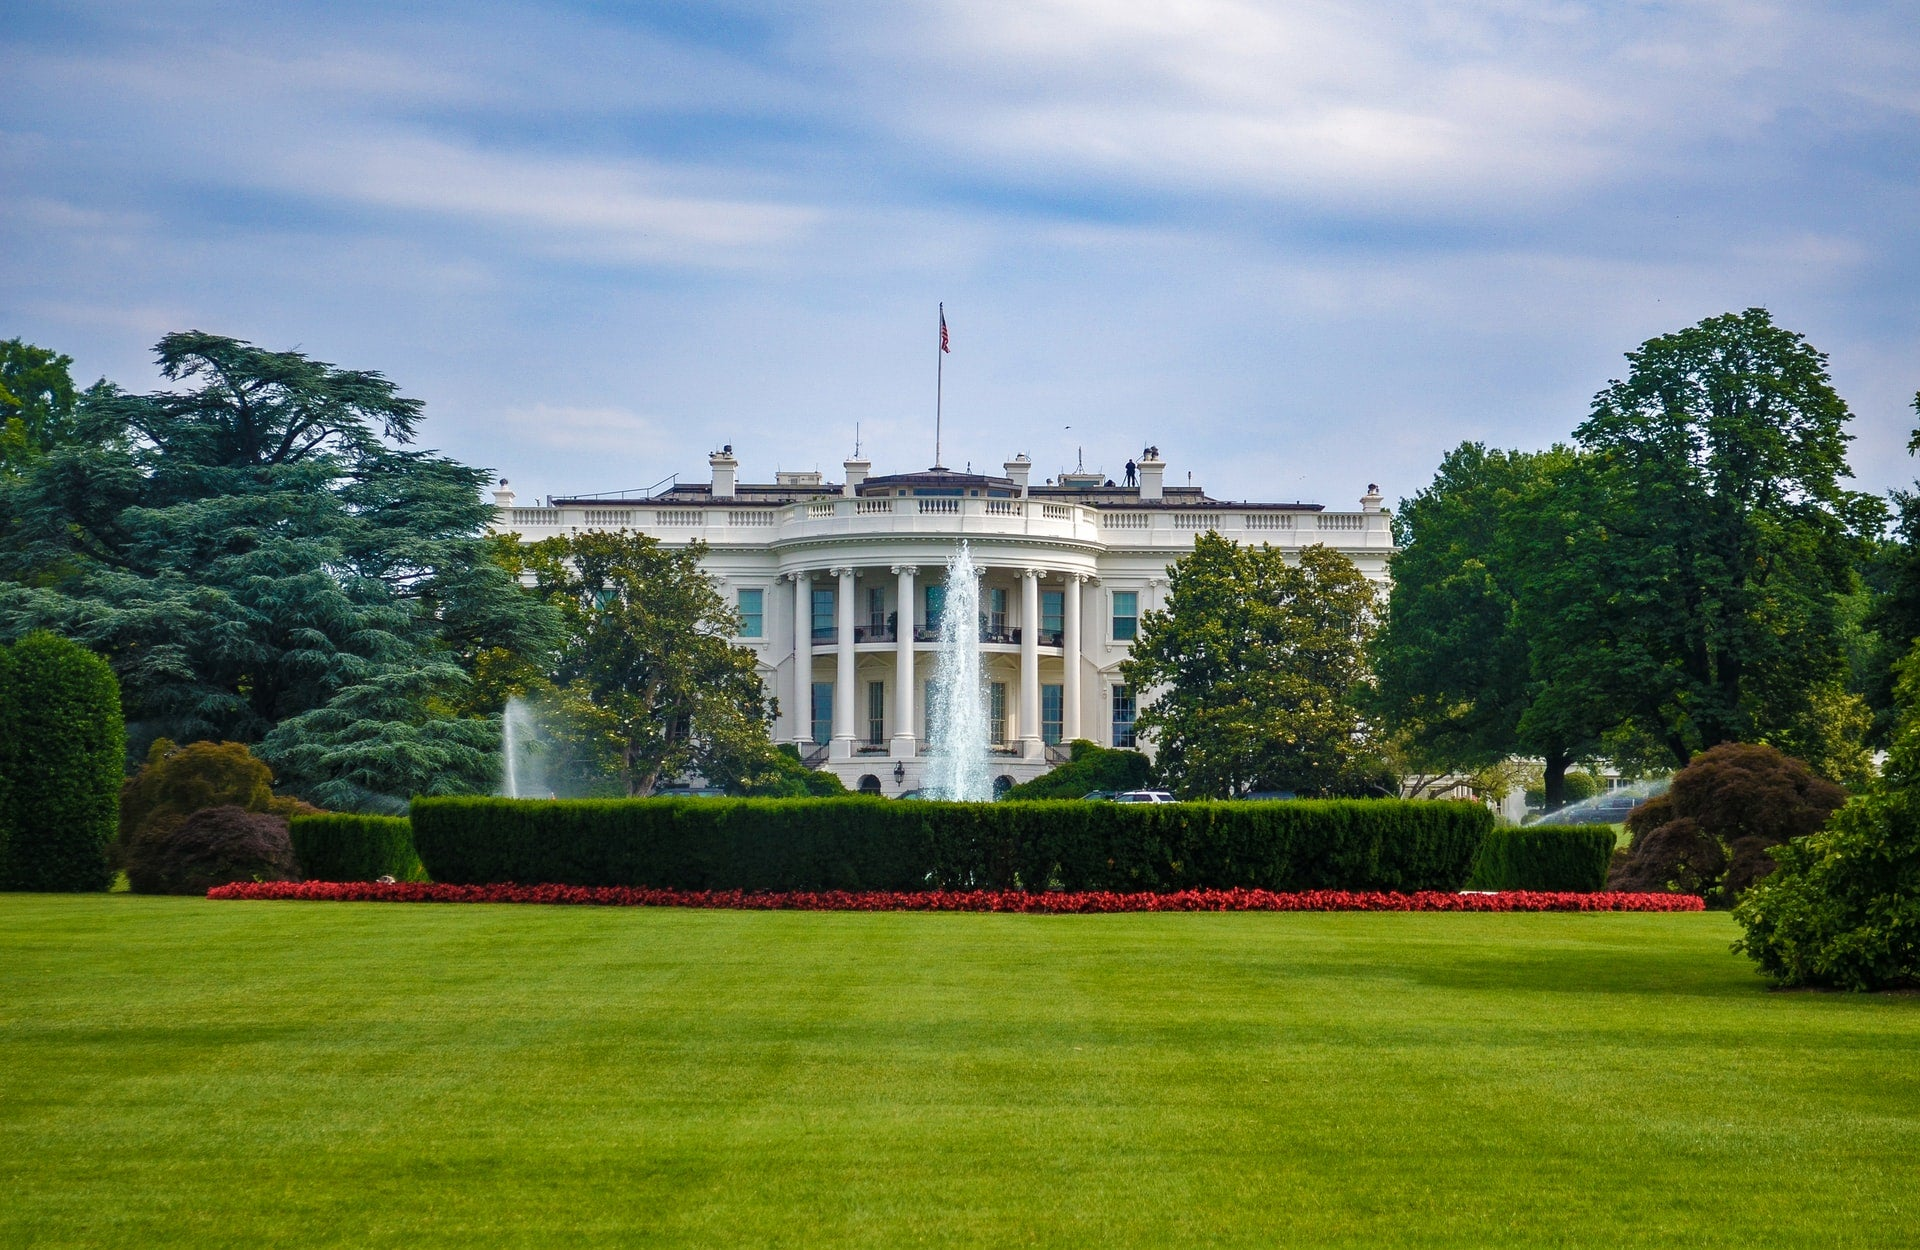 A photograph of The White House, with its green lawn in the foreground